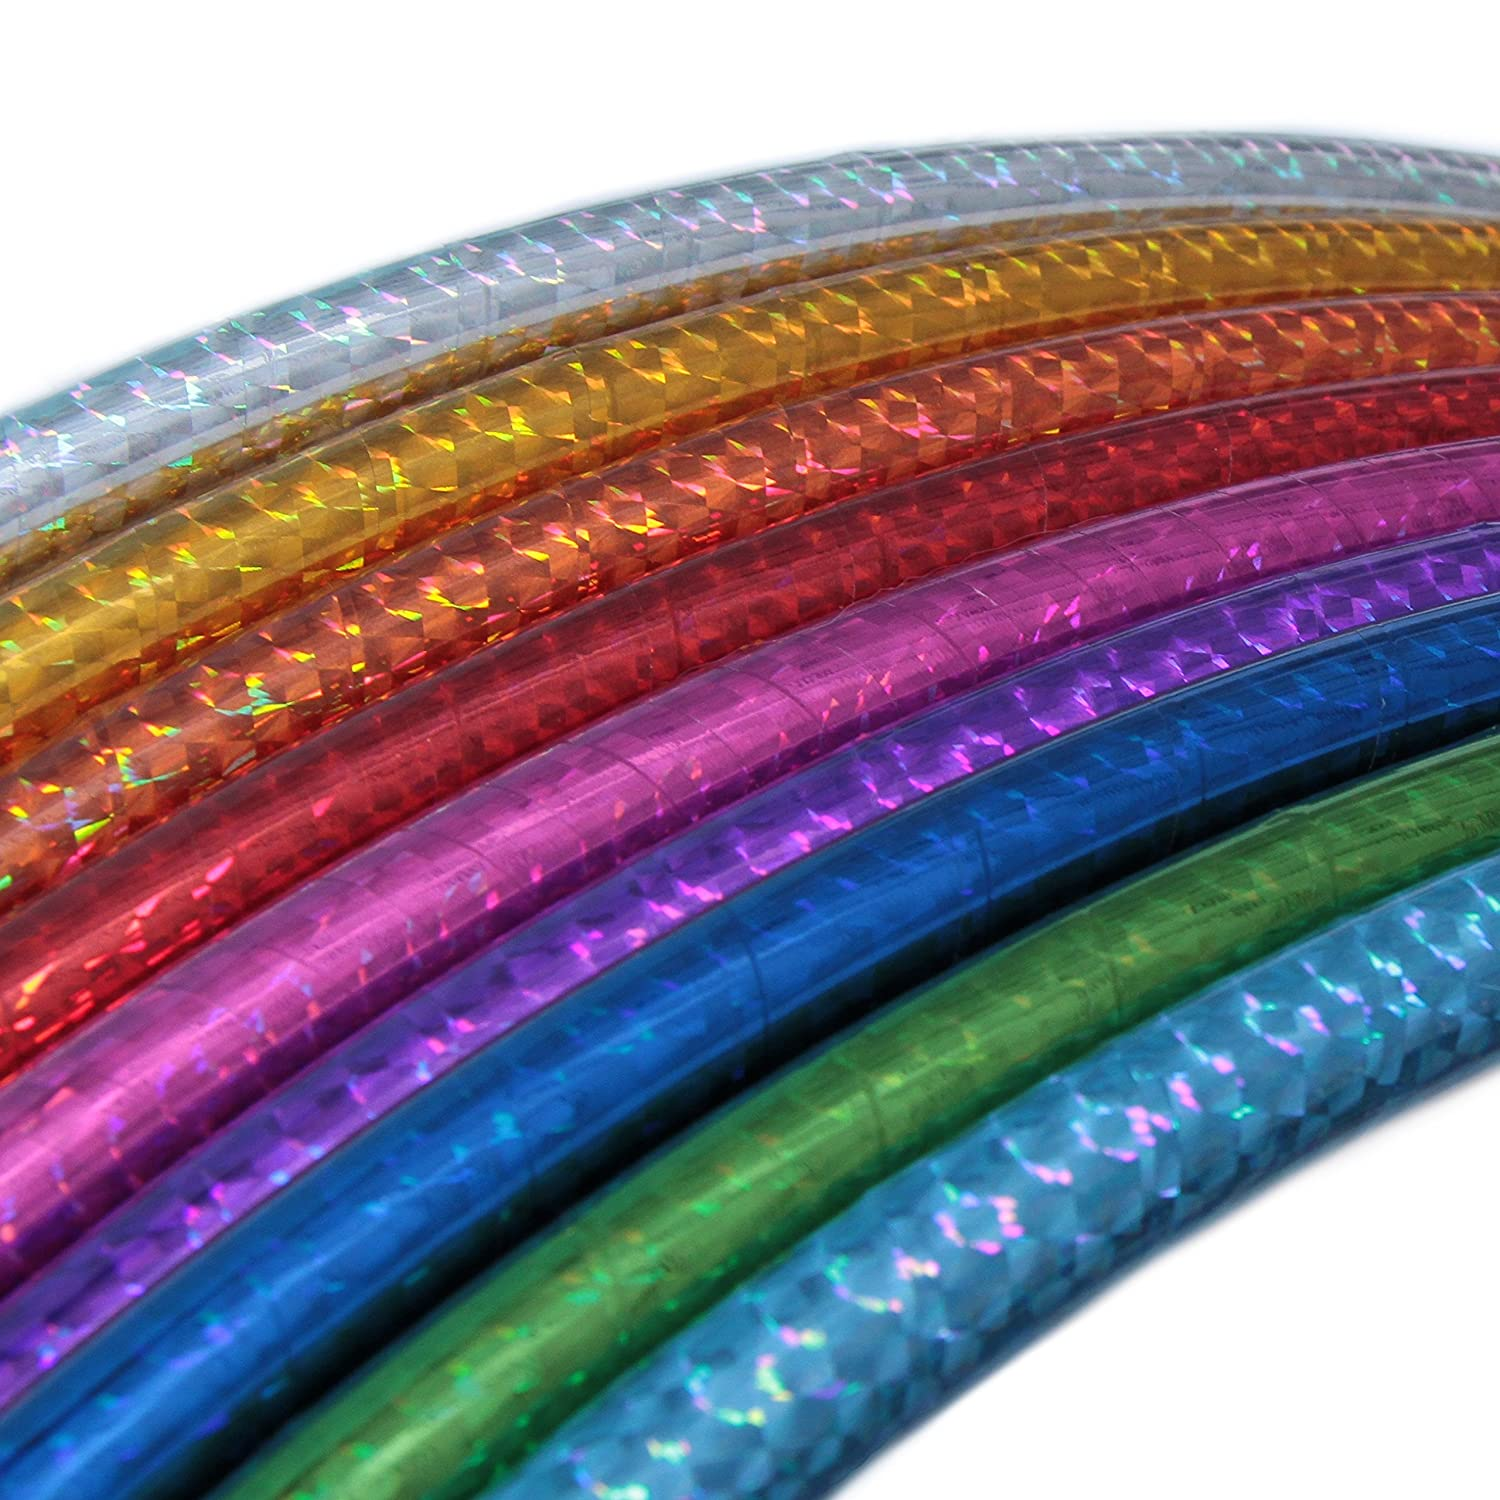 Hoopomania Hula Hoop in Holographic Colours, Children's, Hula Hoop, Hologramm Farben Children' s HOOP5|#Hoopomania